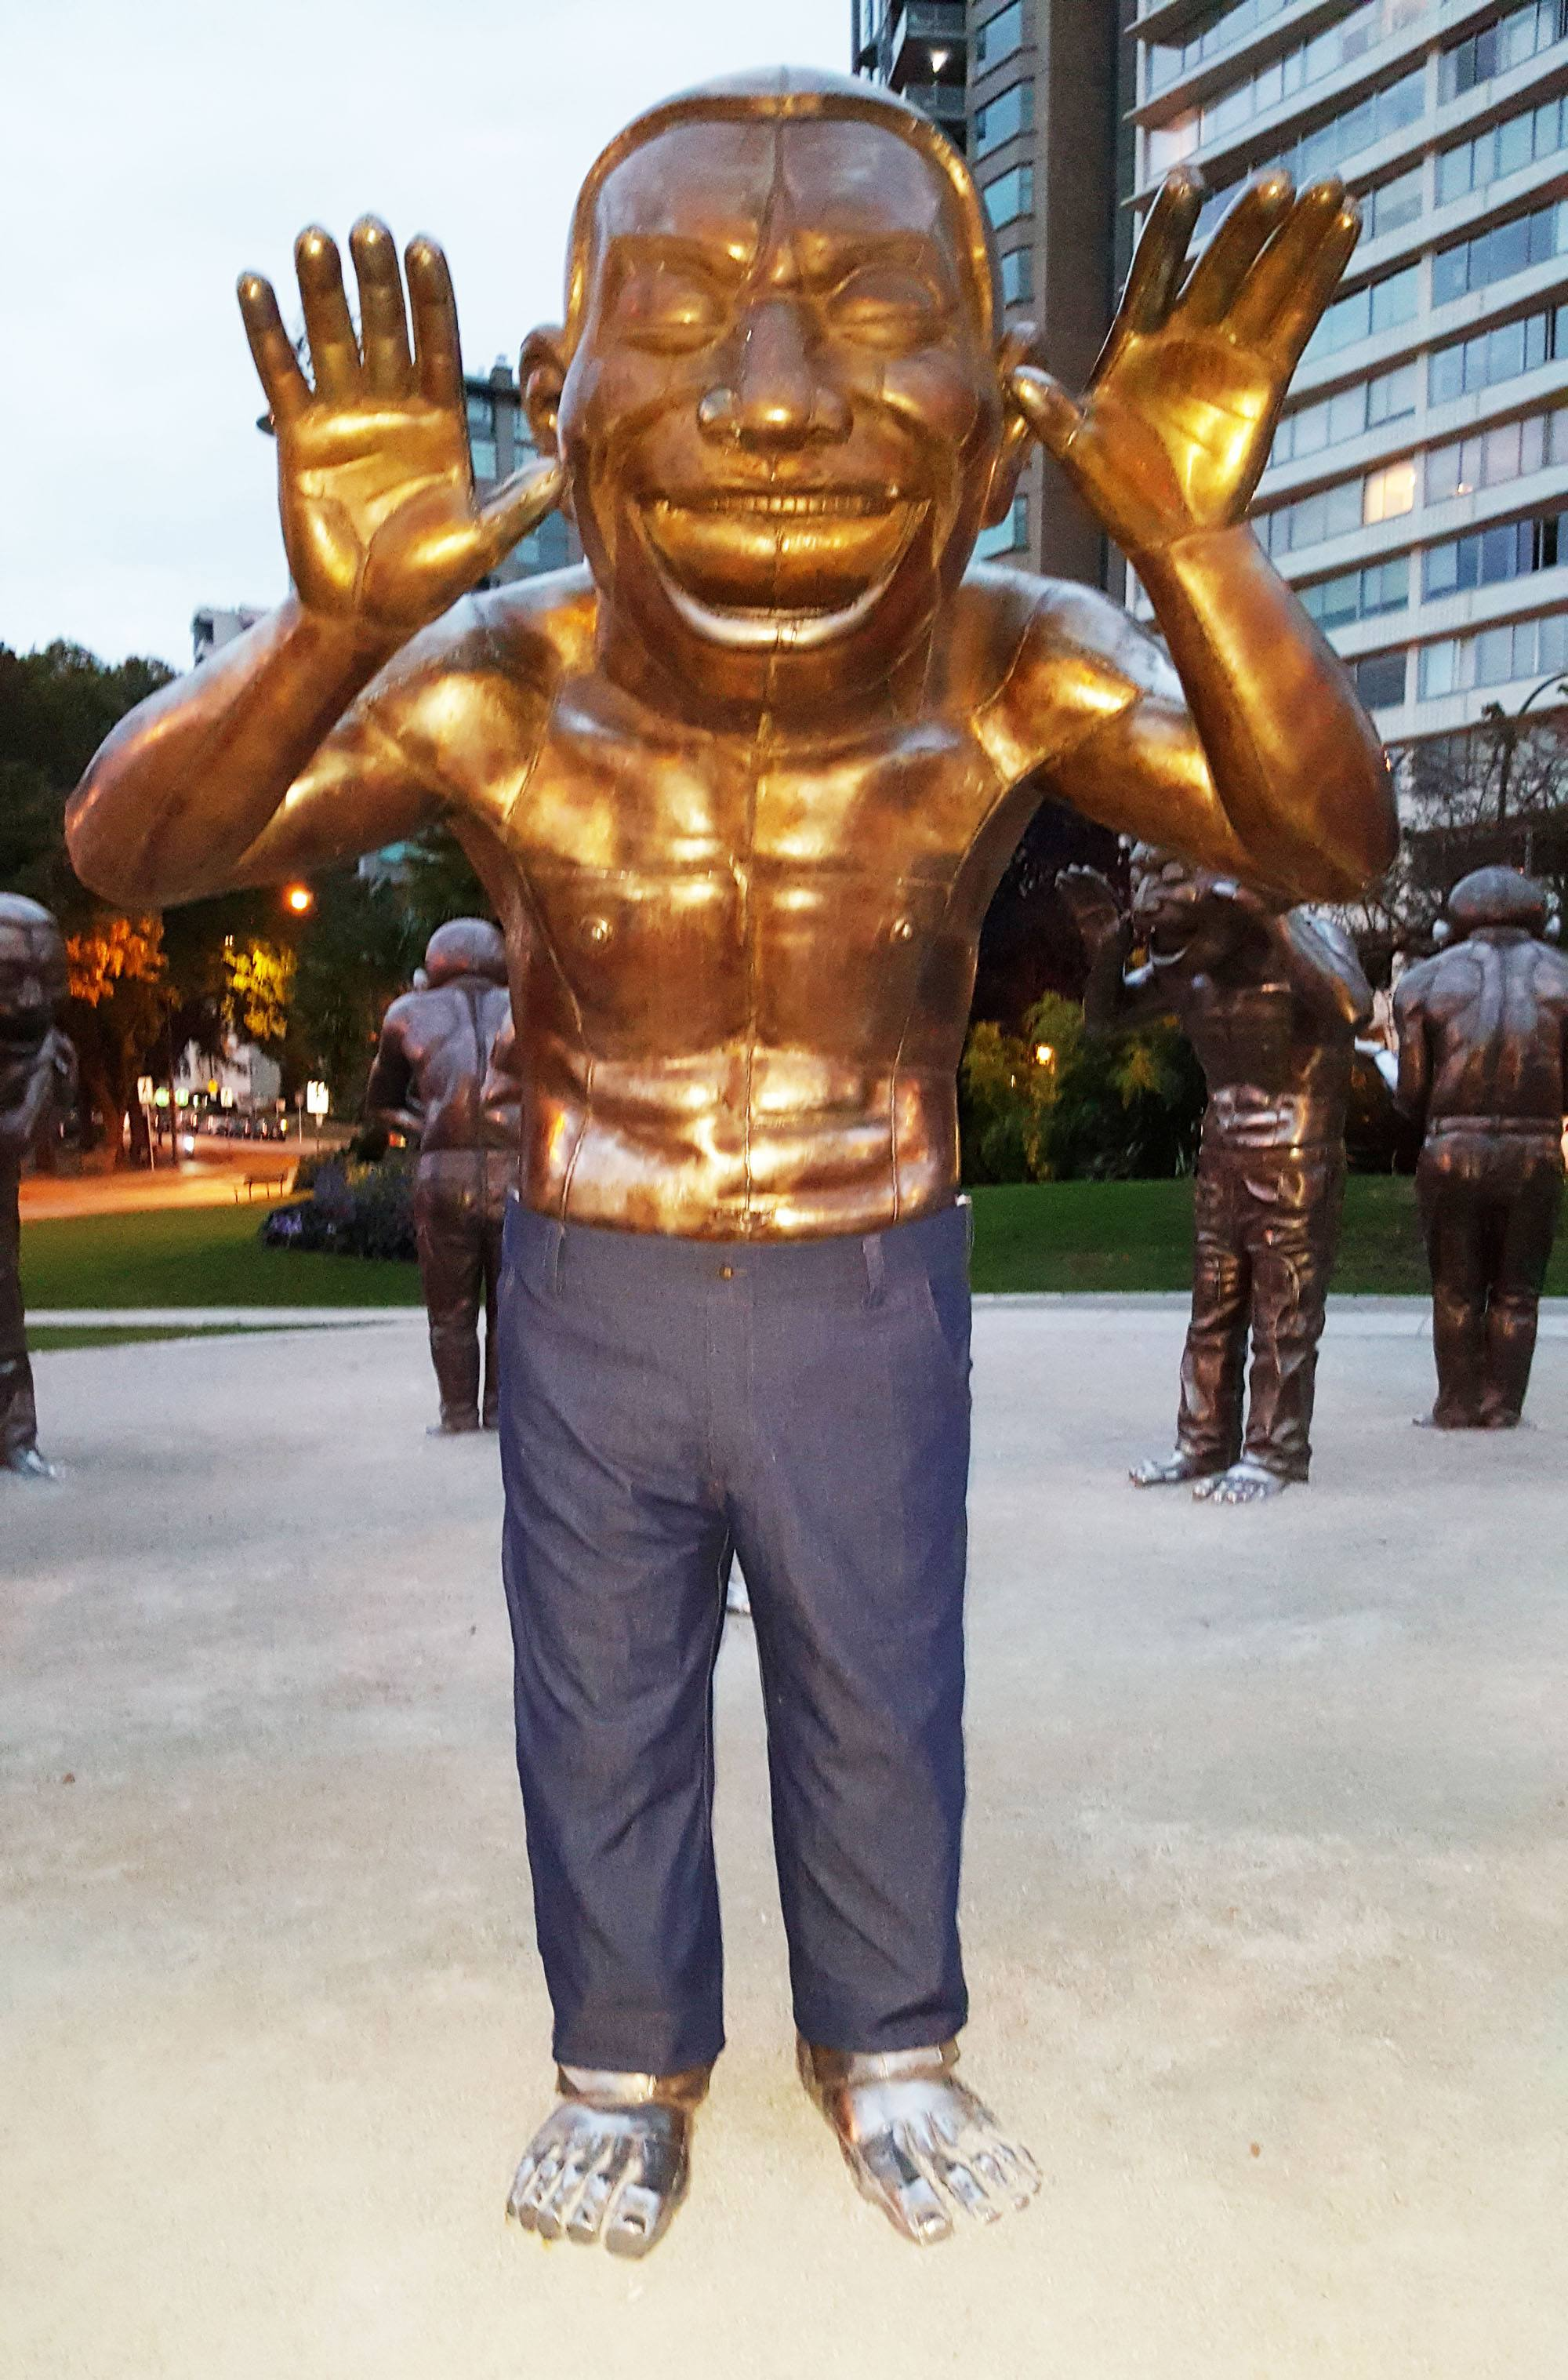 One of Vancouver's laughing statues has been fitted with jeans (Mago 3D Jeans)